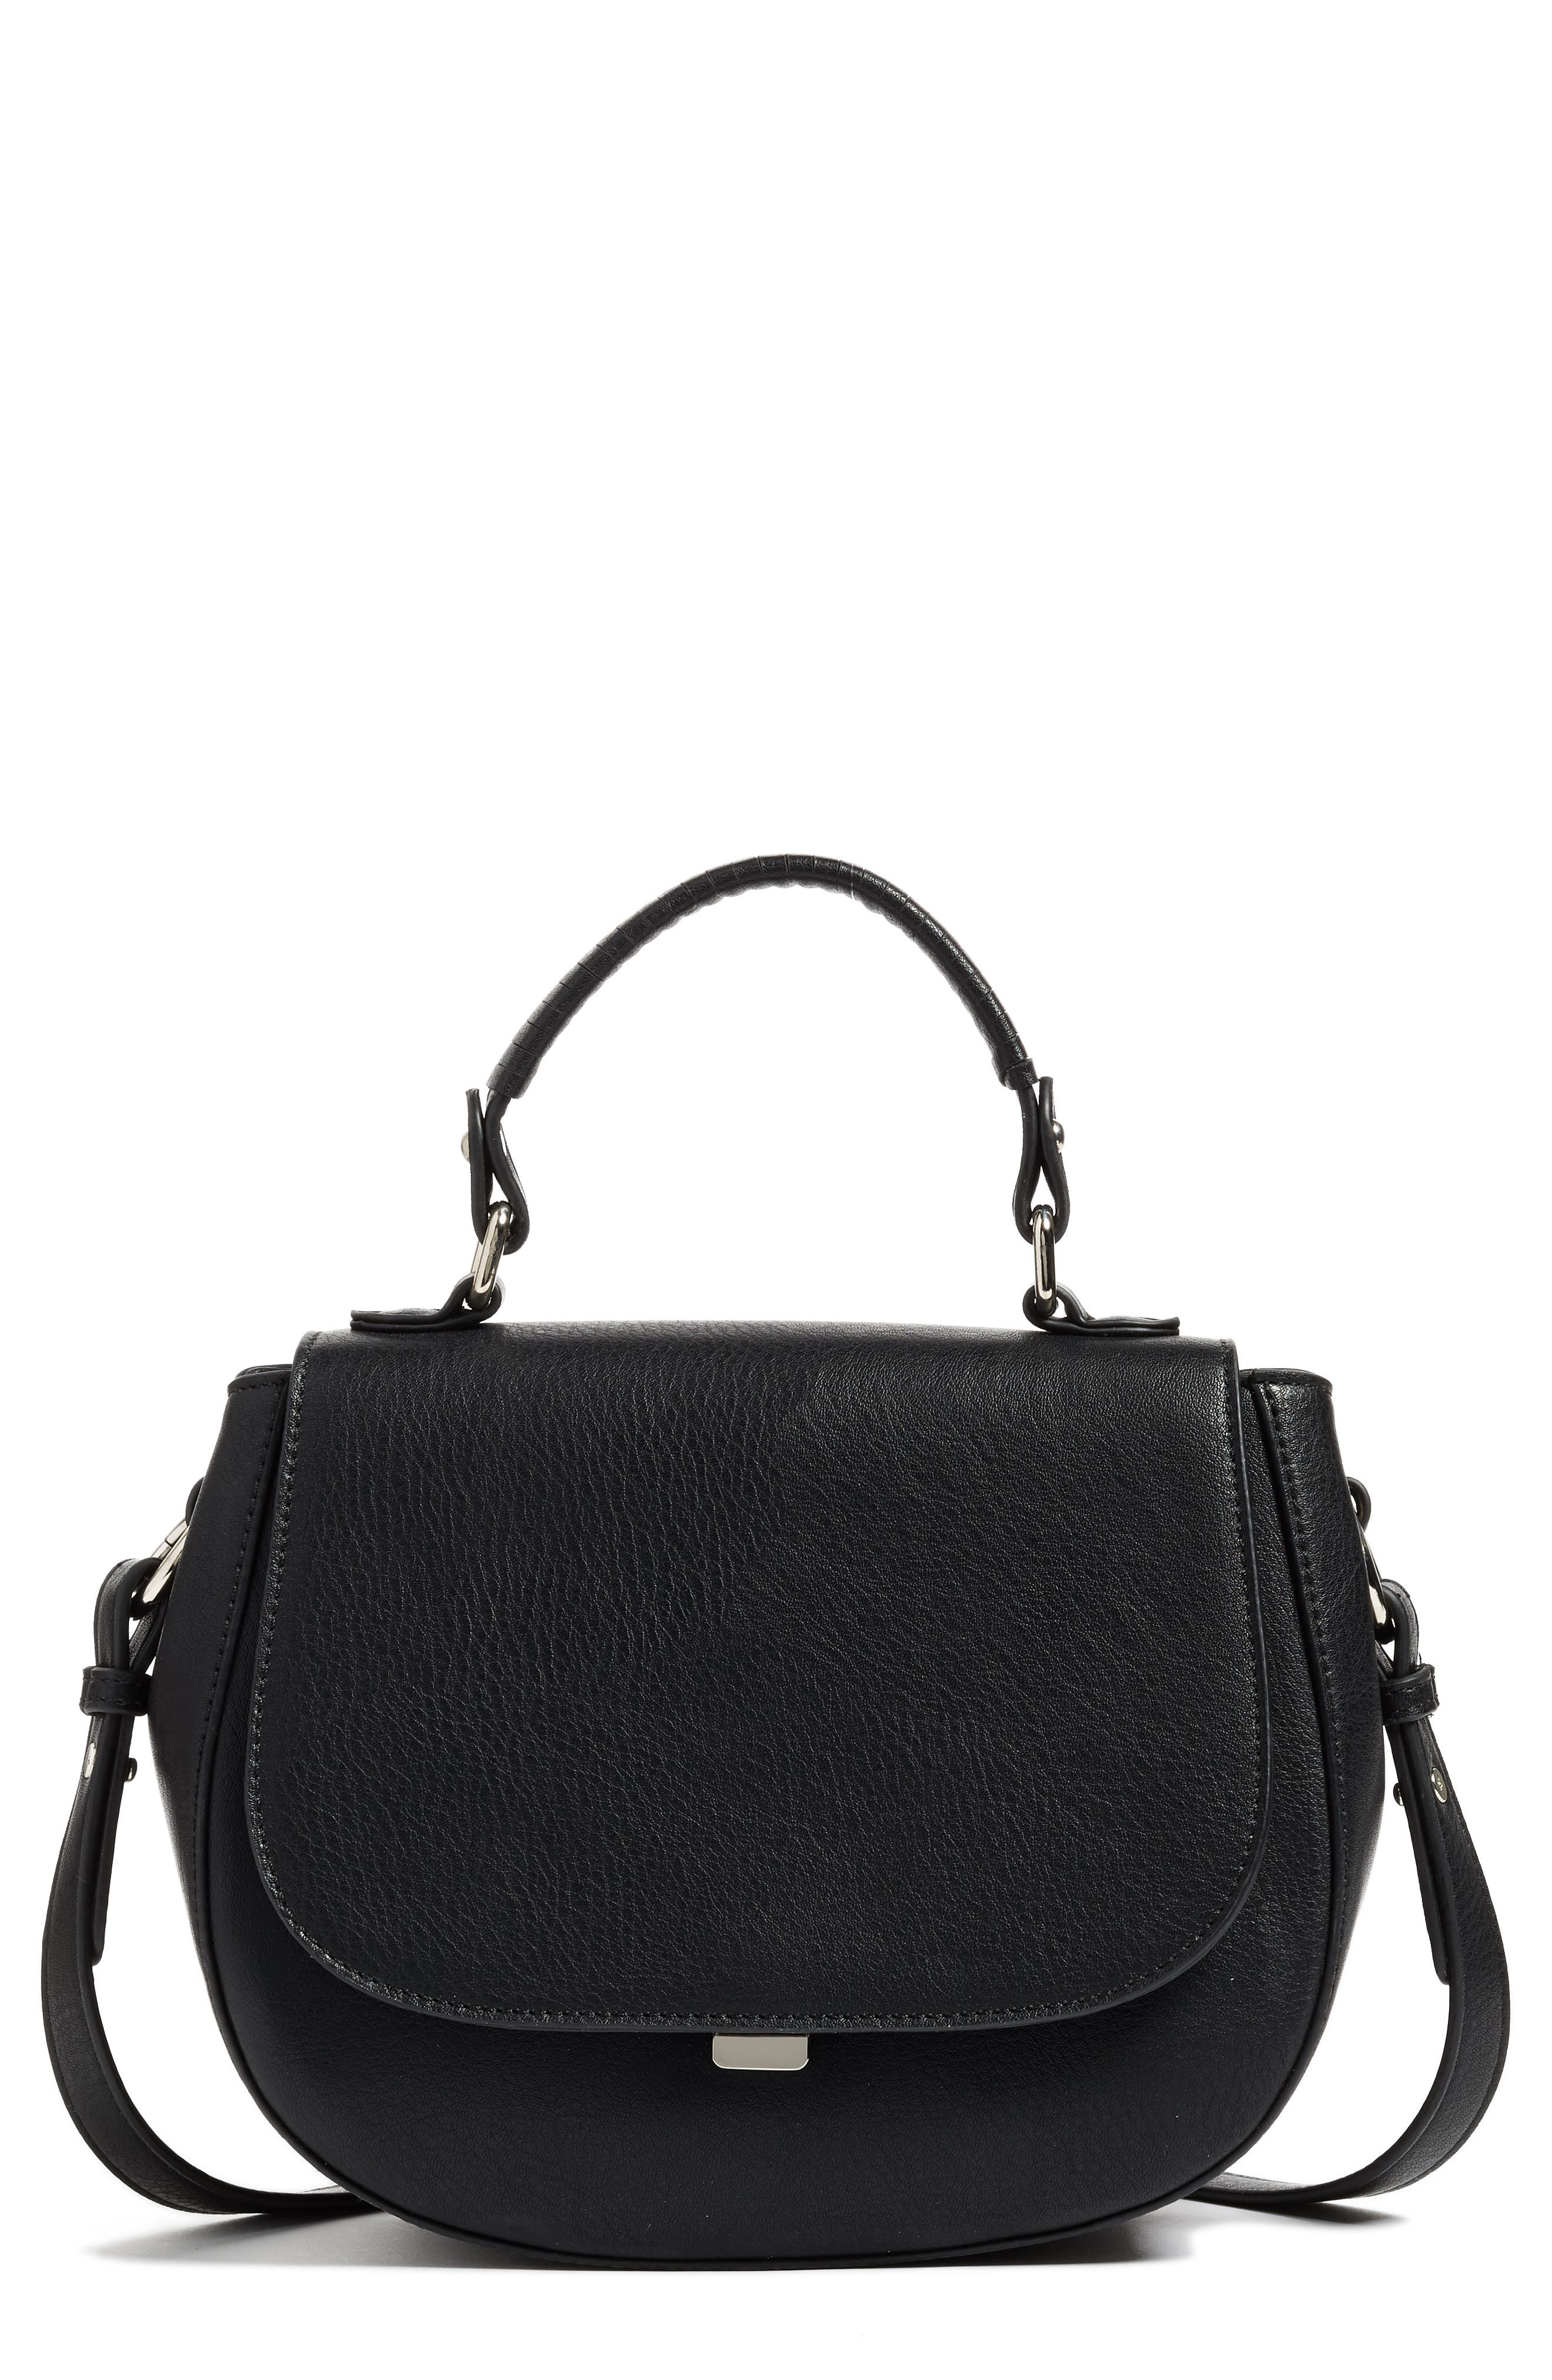 Chelsea28 Kyle Faux Leather Saddle Bag